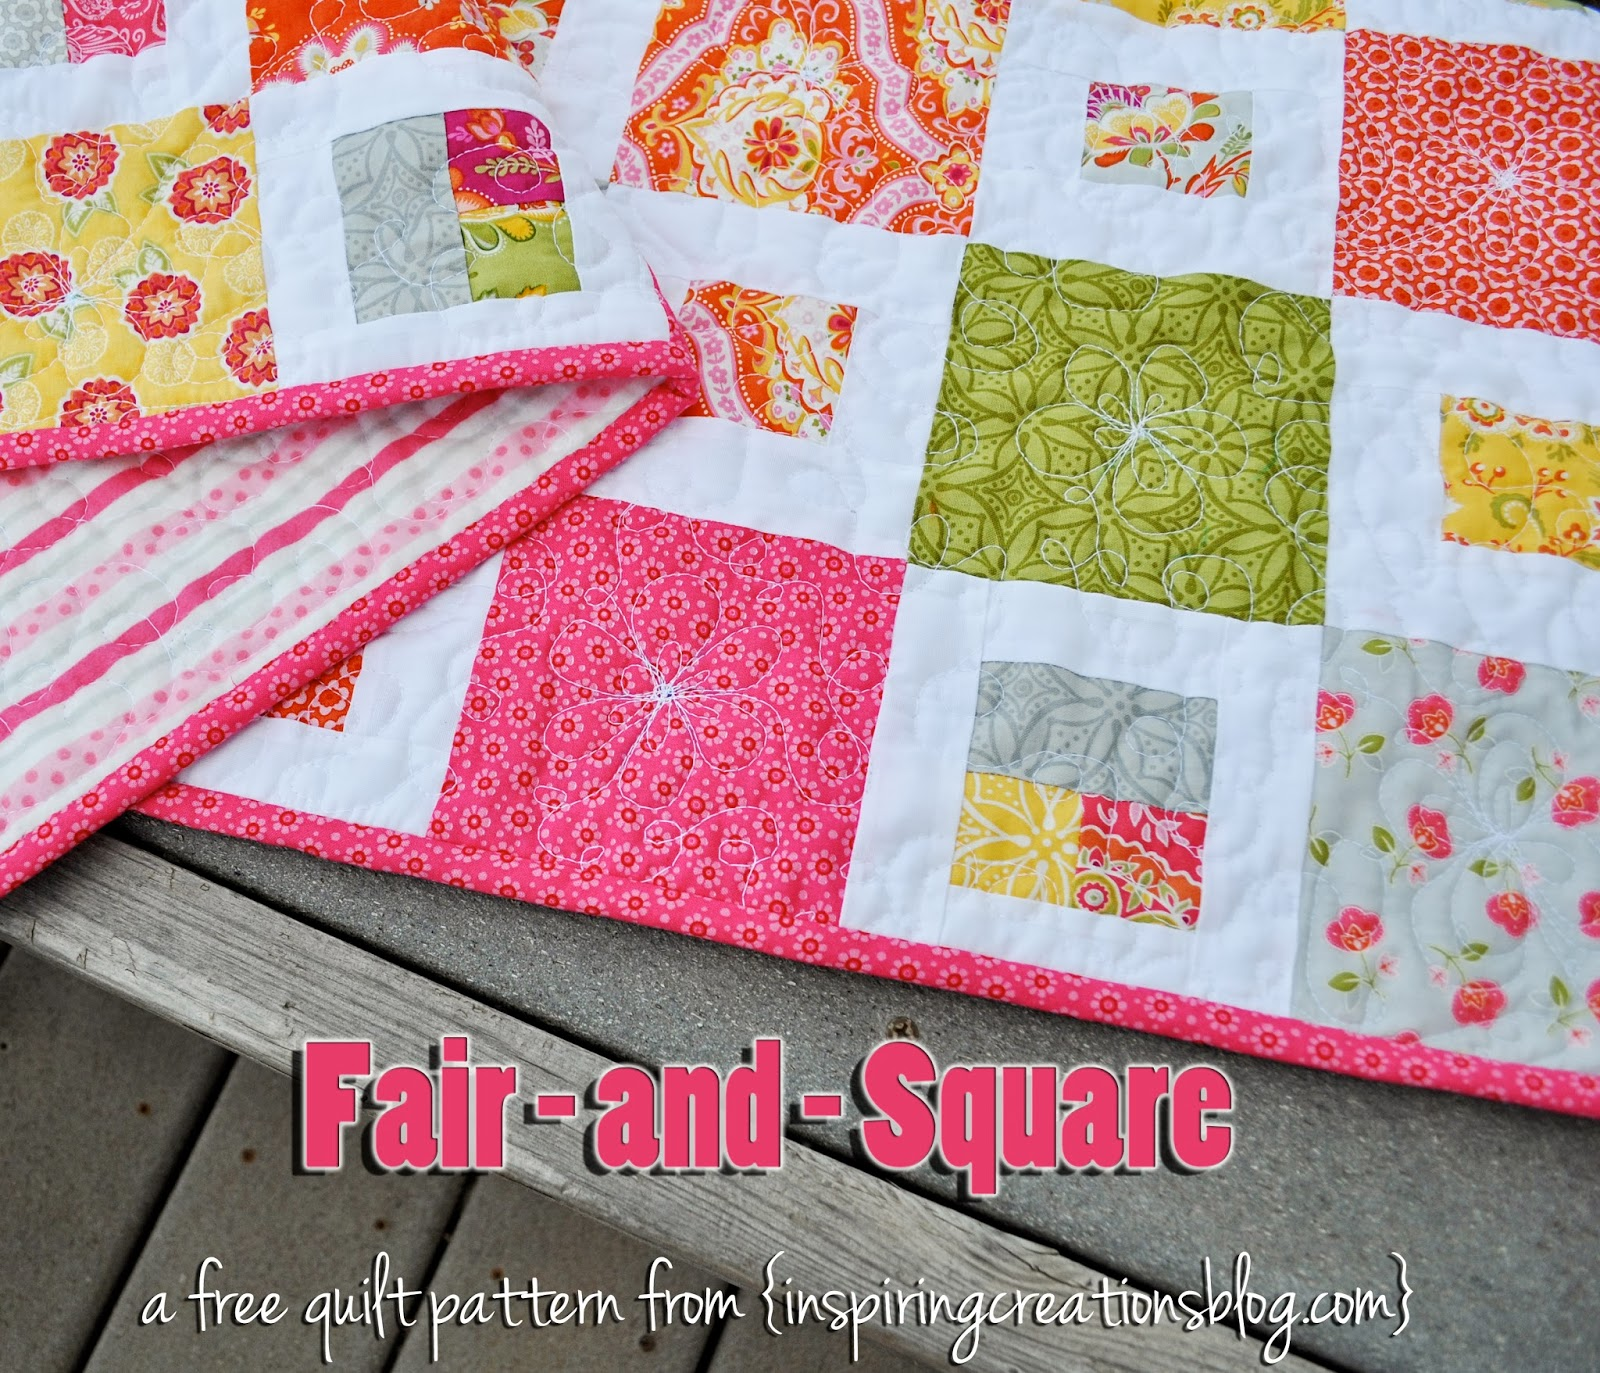 Inspiring creations fair and square free pattern and video tutorial fair and square free pattern and video tutorial maxwellsz